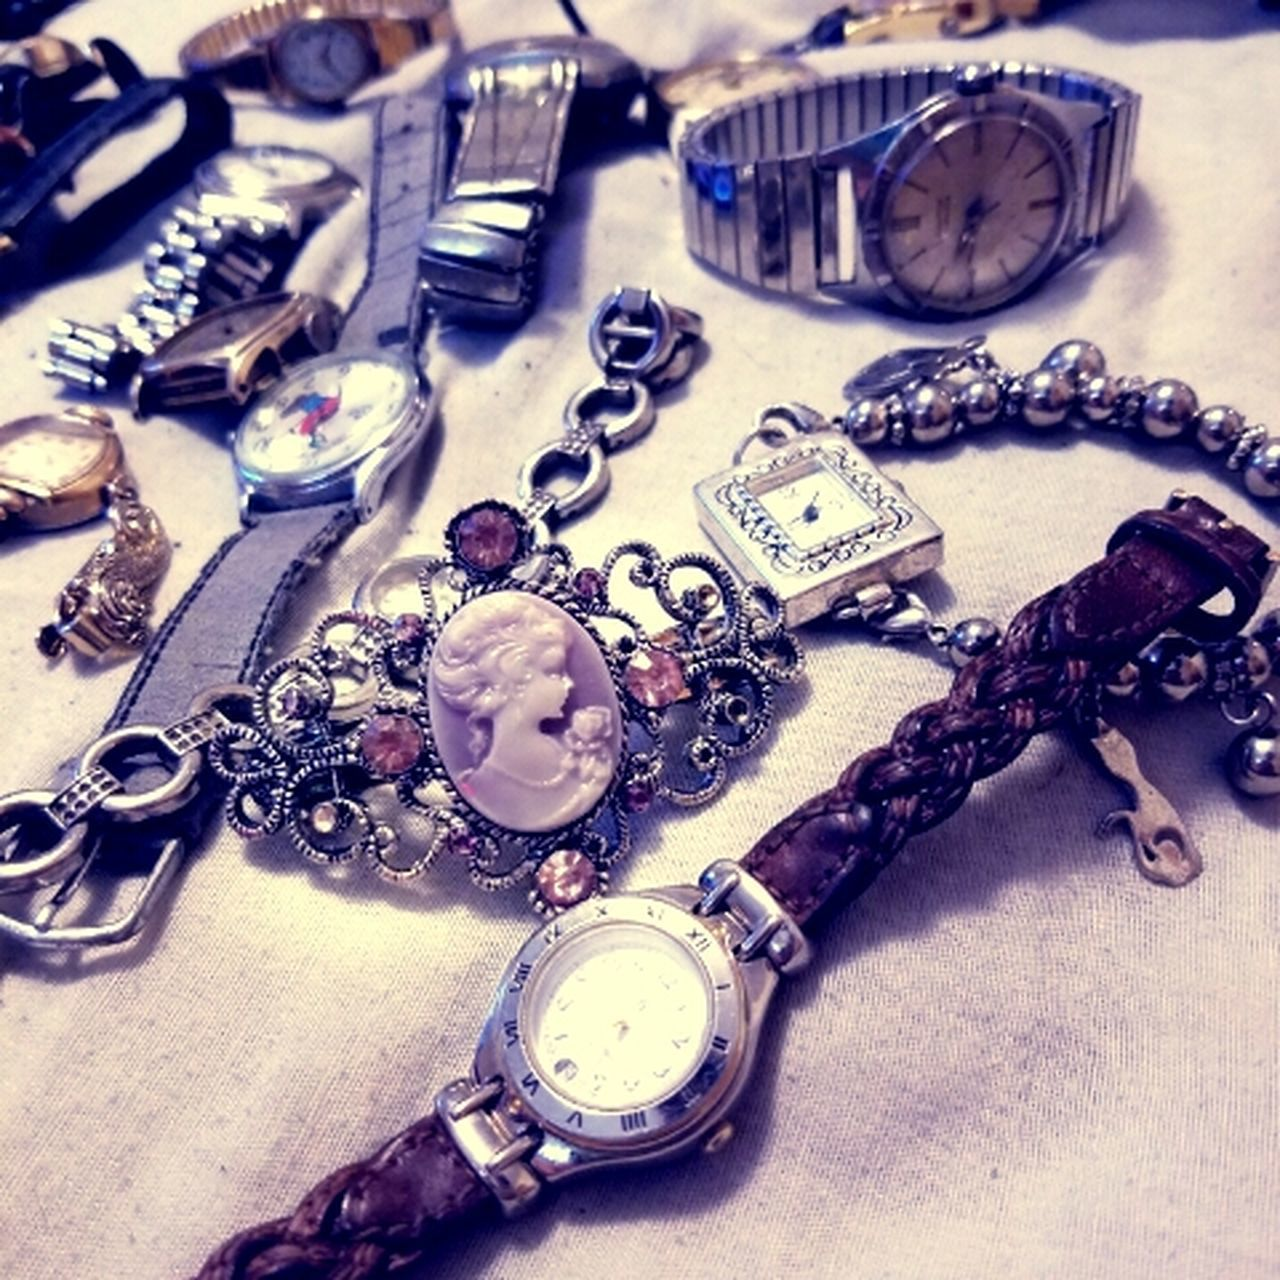 Antique Old-fashioned Body Adornment No People Clock Time Indoors  Day AMPt_community Jewelry Heirloom Hair Assortment Accessory Vintage Shootersmag WeAreJuxt.com NEM Submissions Streamzoofamily Close-up EyeEm Masterclass Collection Domestic Animals Belongings Ebay Lieblingsteil